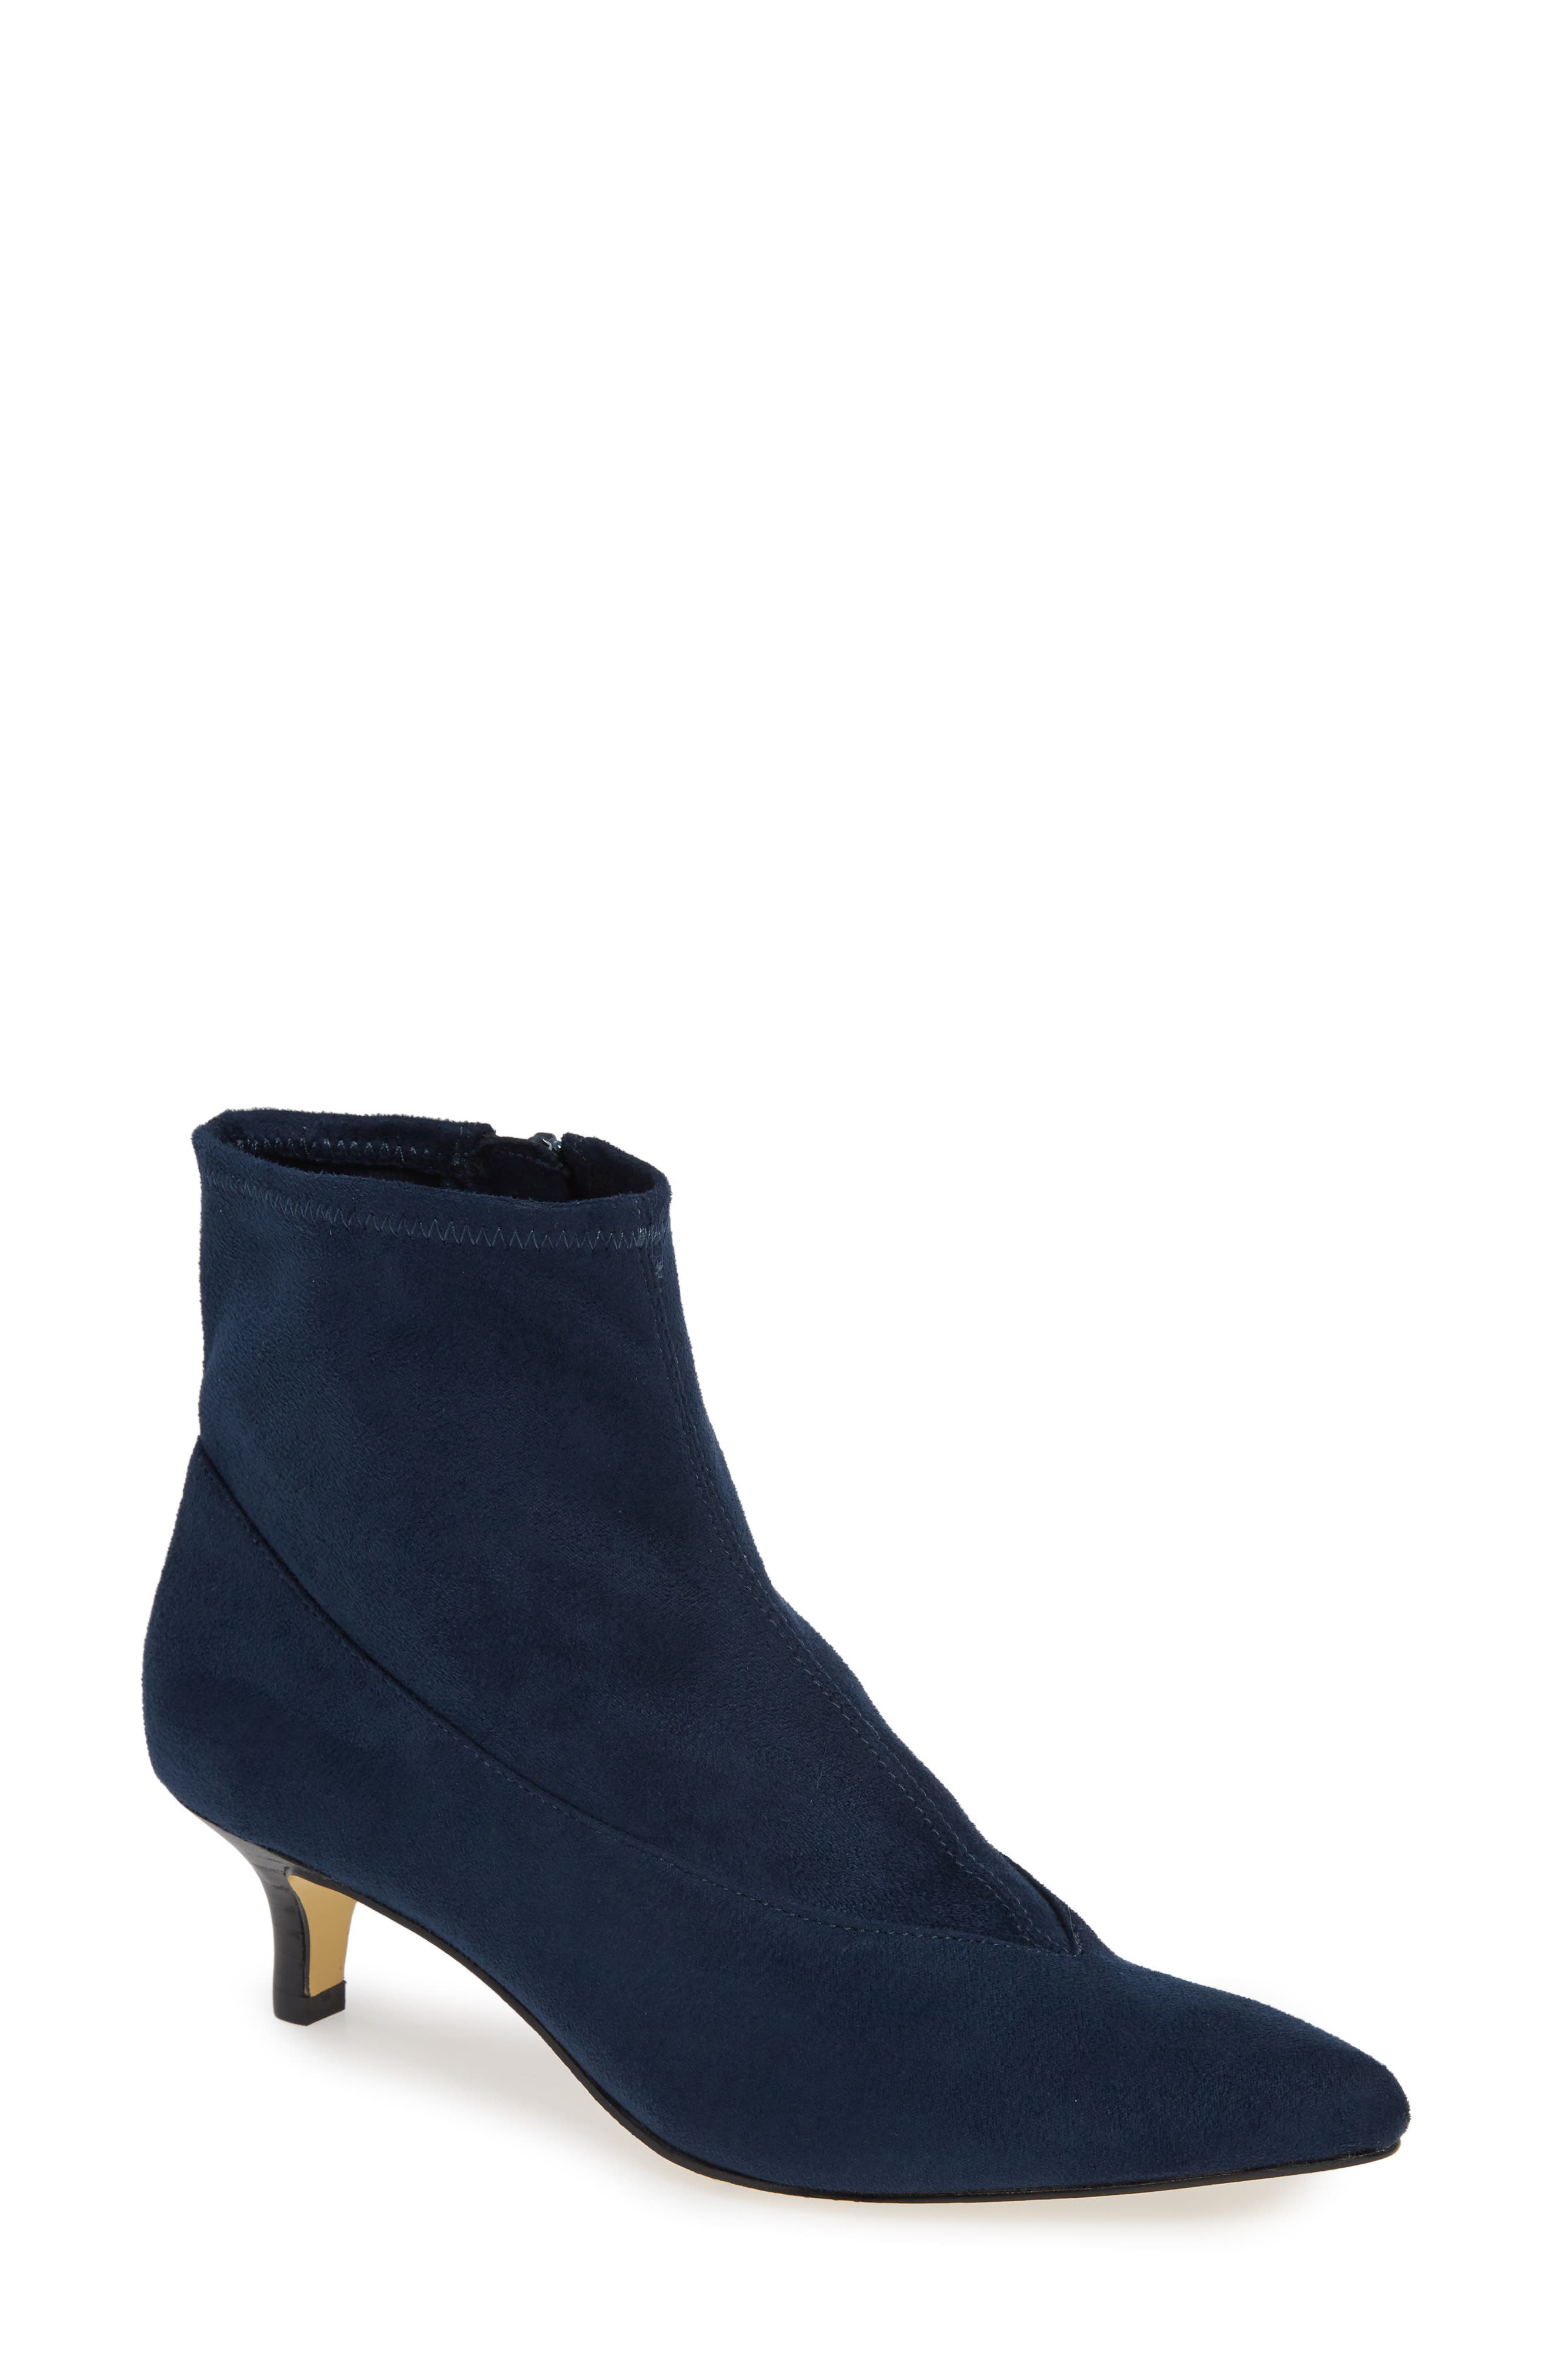 Who What Wear Women/'s Amber colbalt Blue Suede Bootie size 9